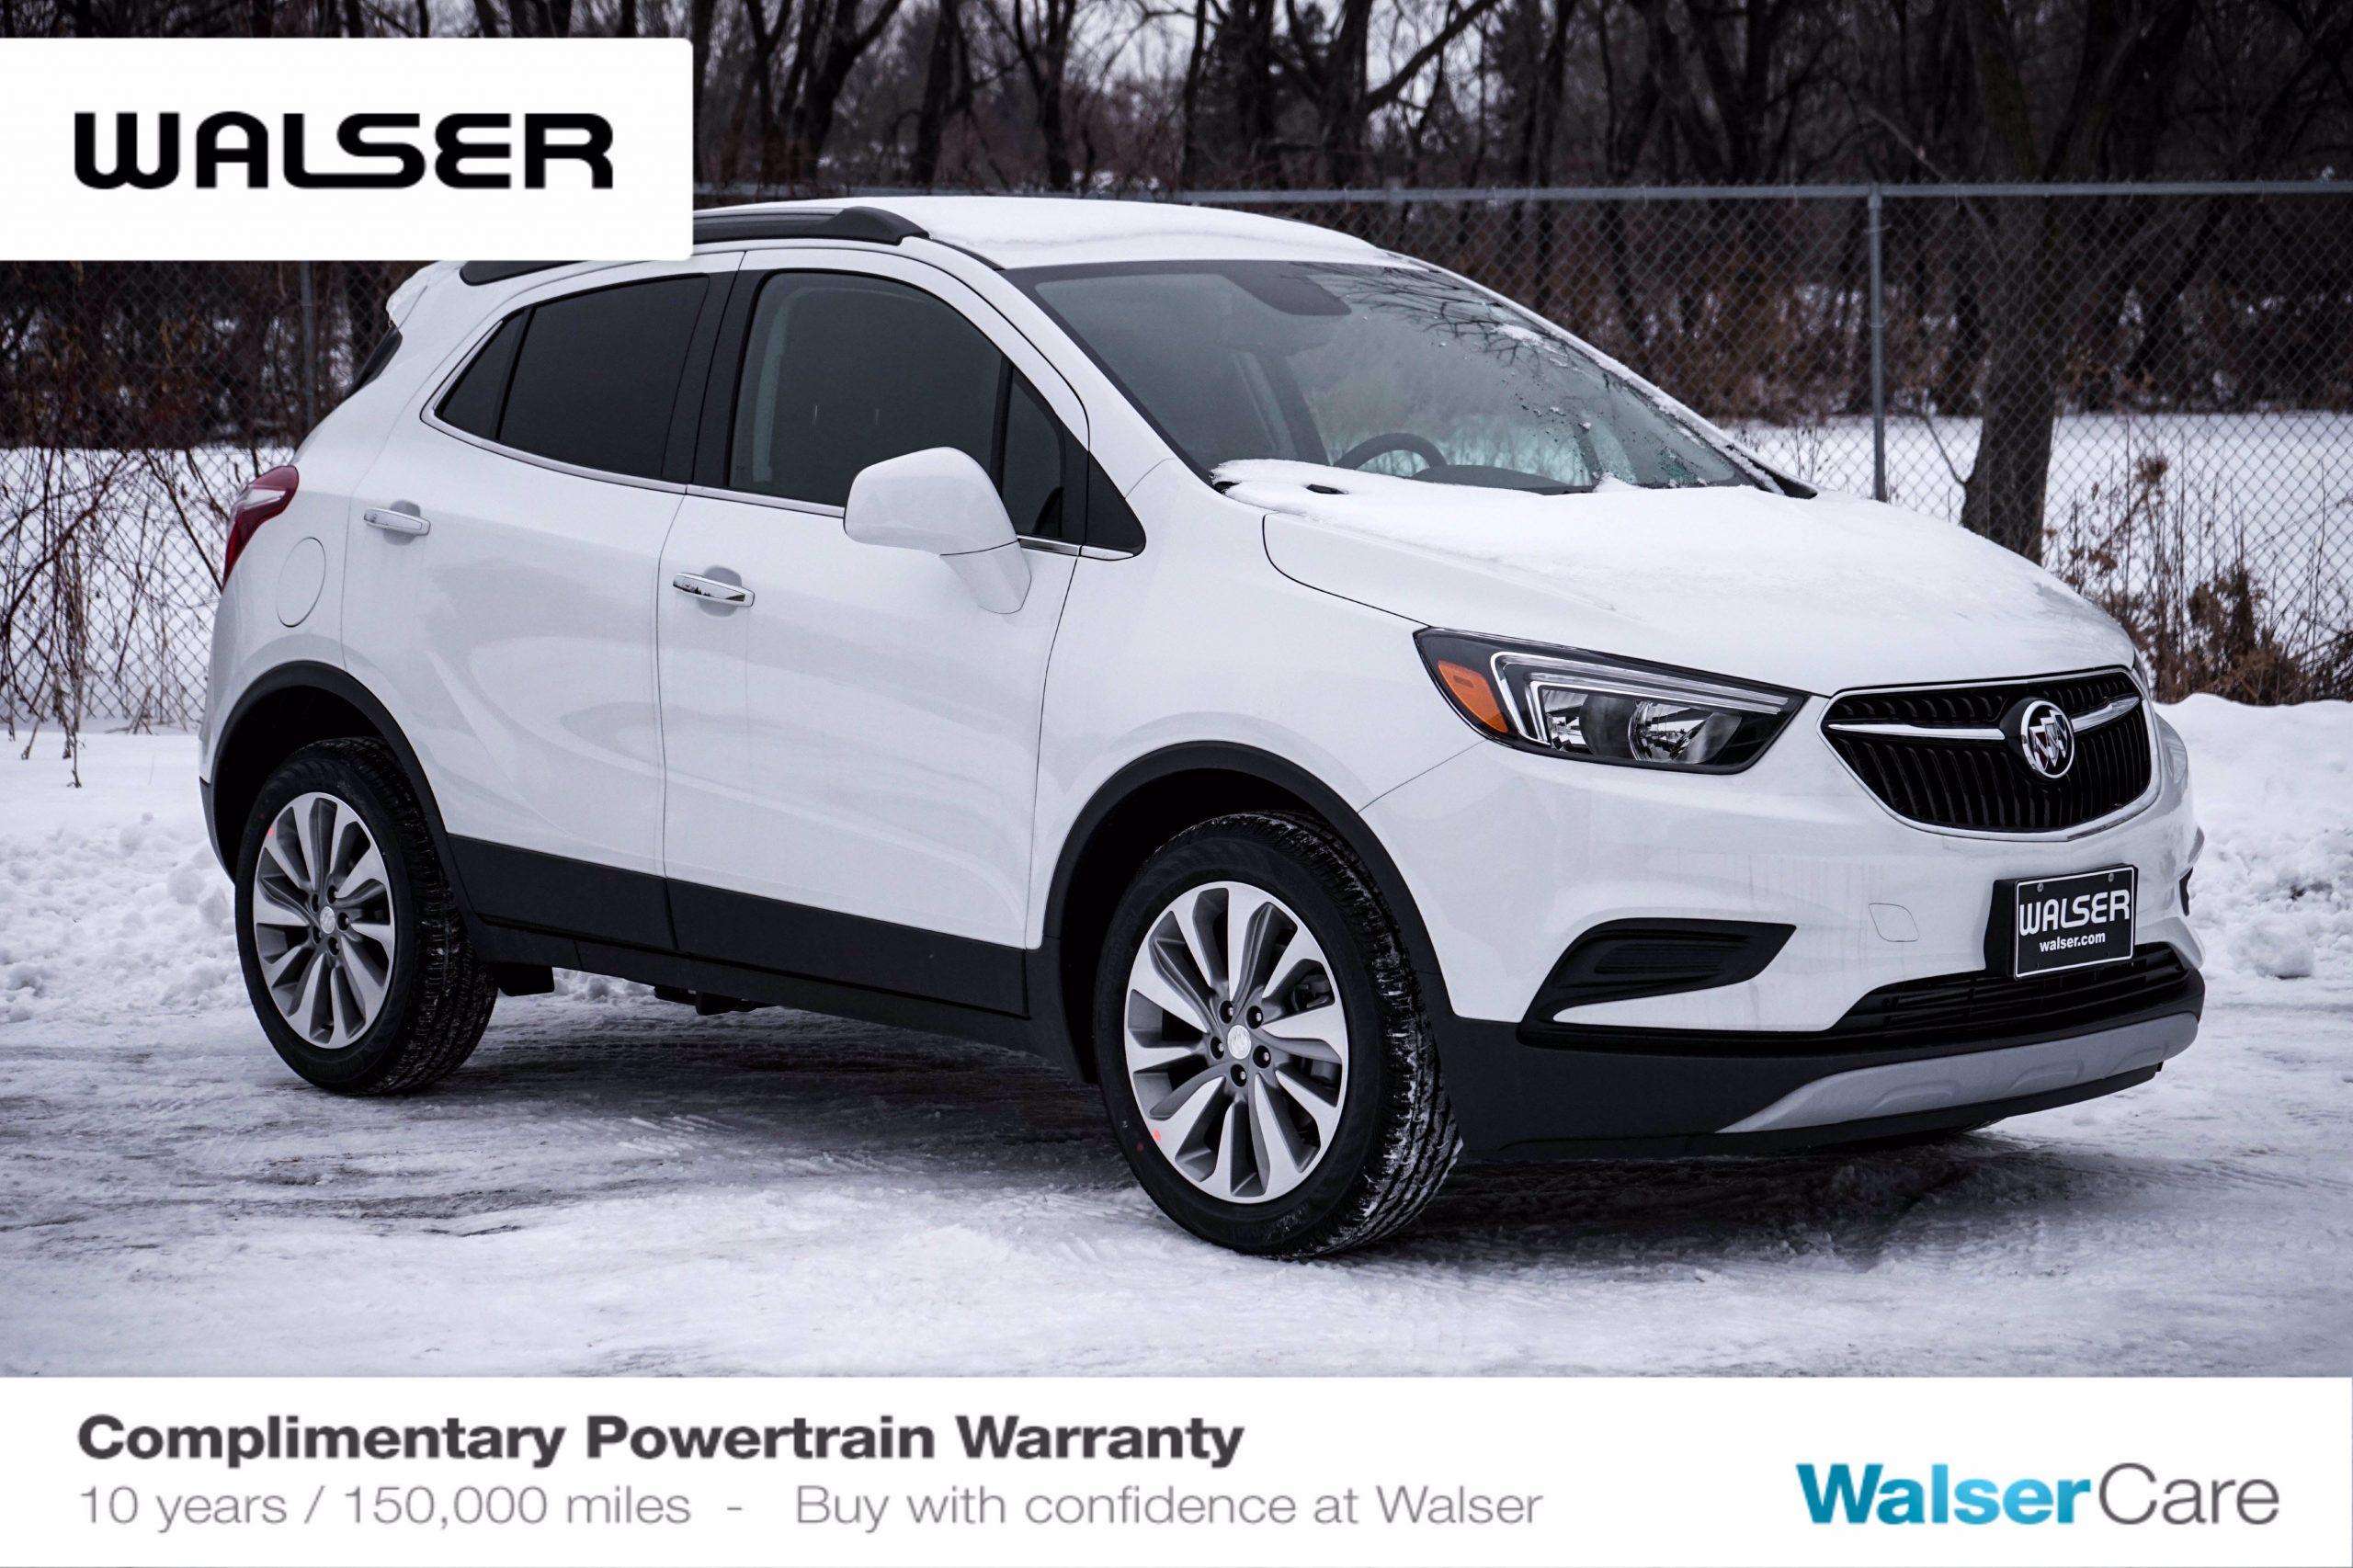 February 2020 Best 2020 Buick Encore Lease & Finance Deals New 2021 Buick Encore Lease Specials, Trim Levels, Mpg